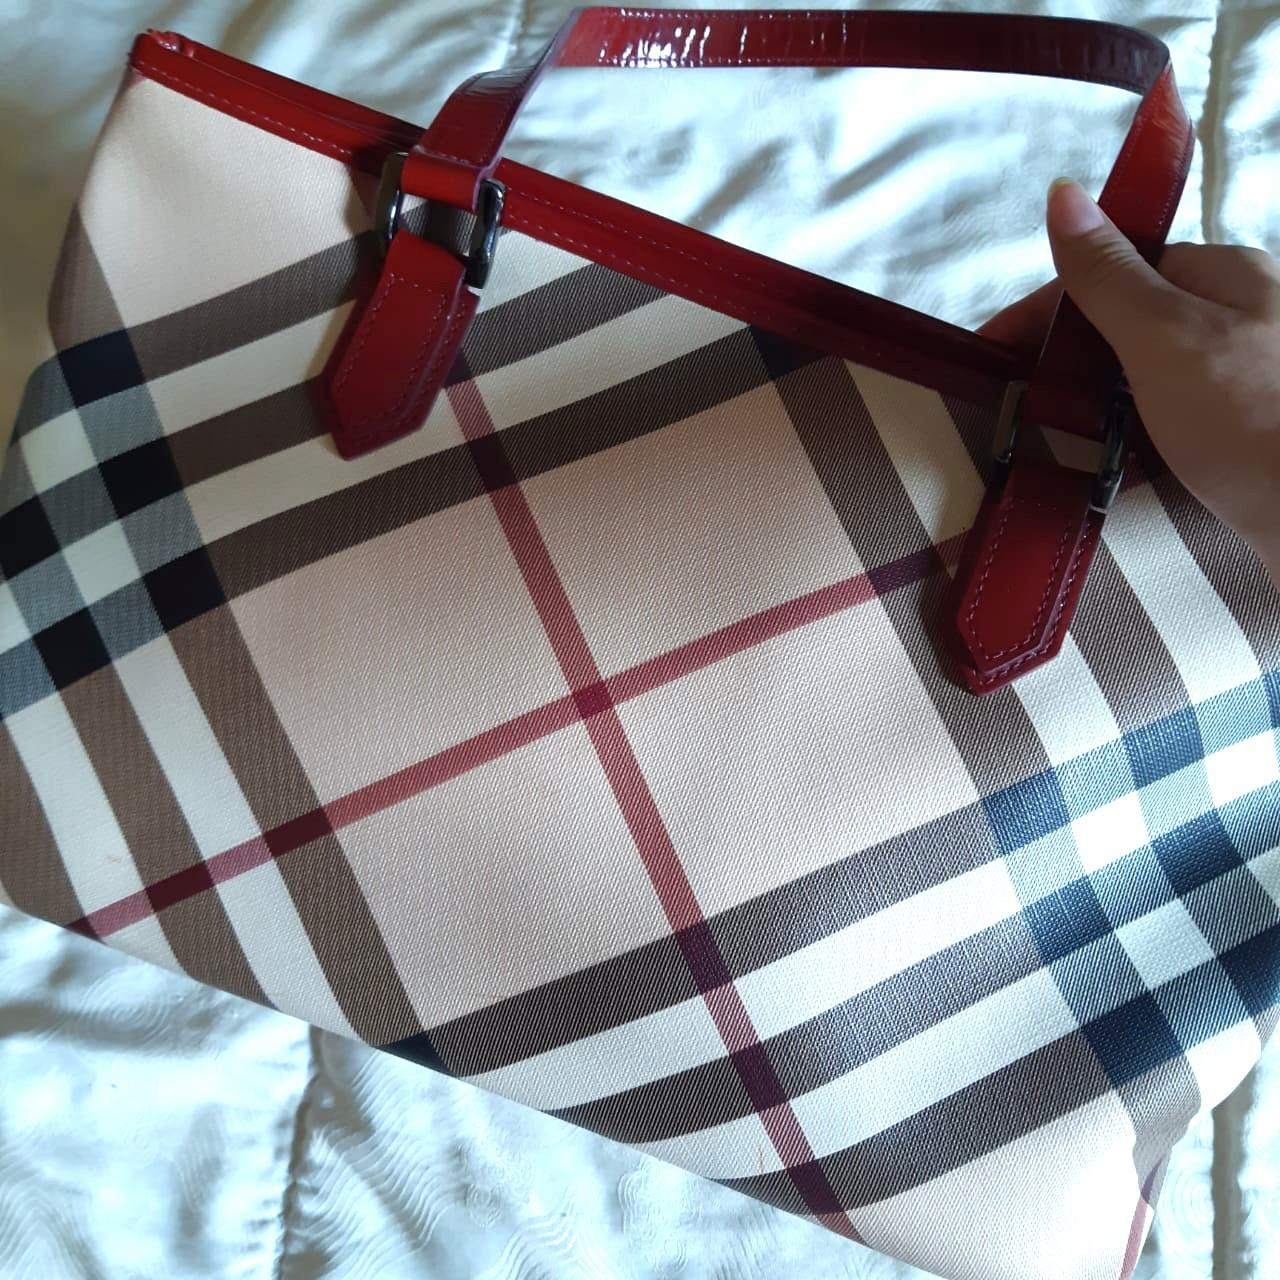 Burberry Nova check red nickie Tote Bag  ORIGINAL from store (Preloved clean / no defect)